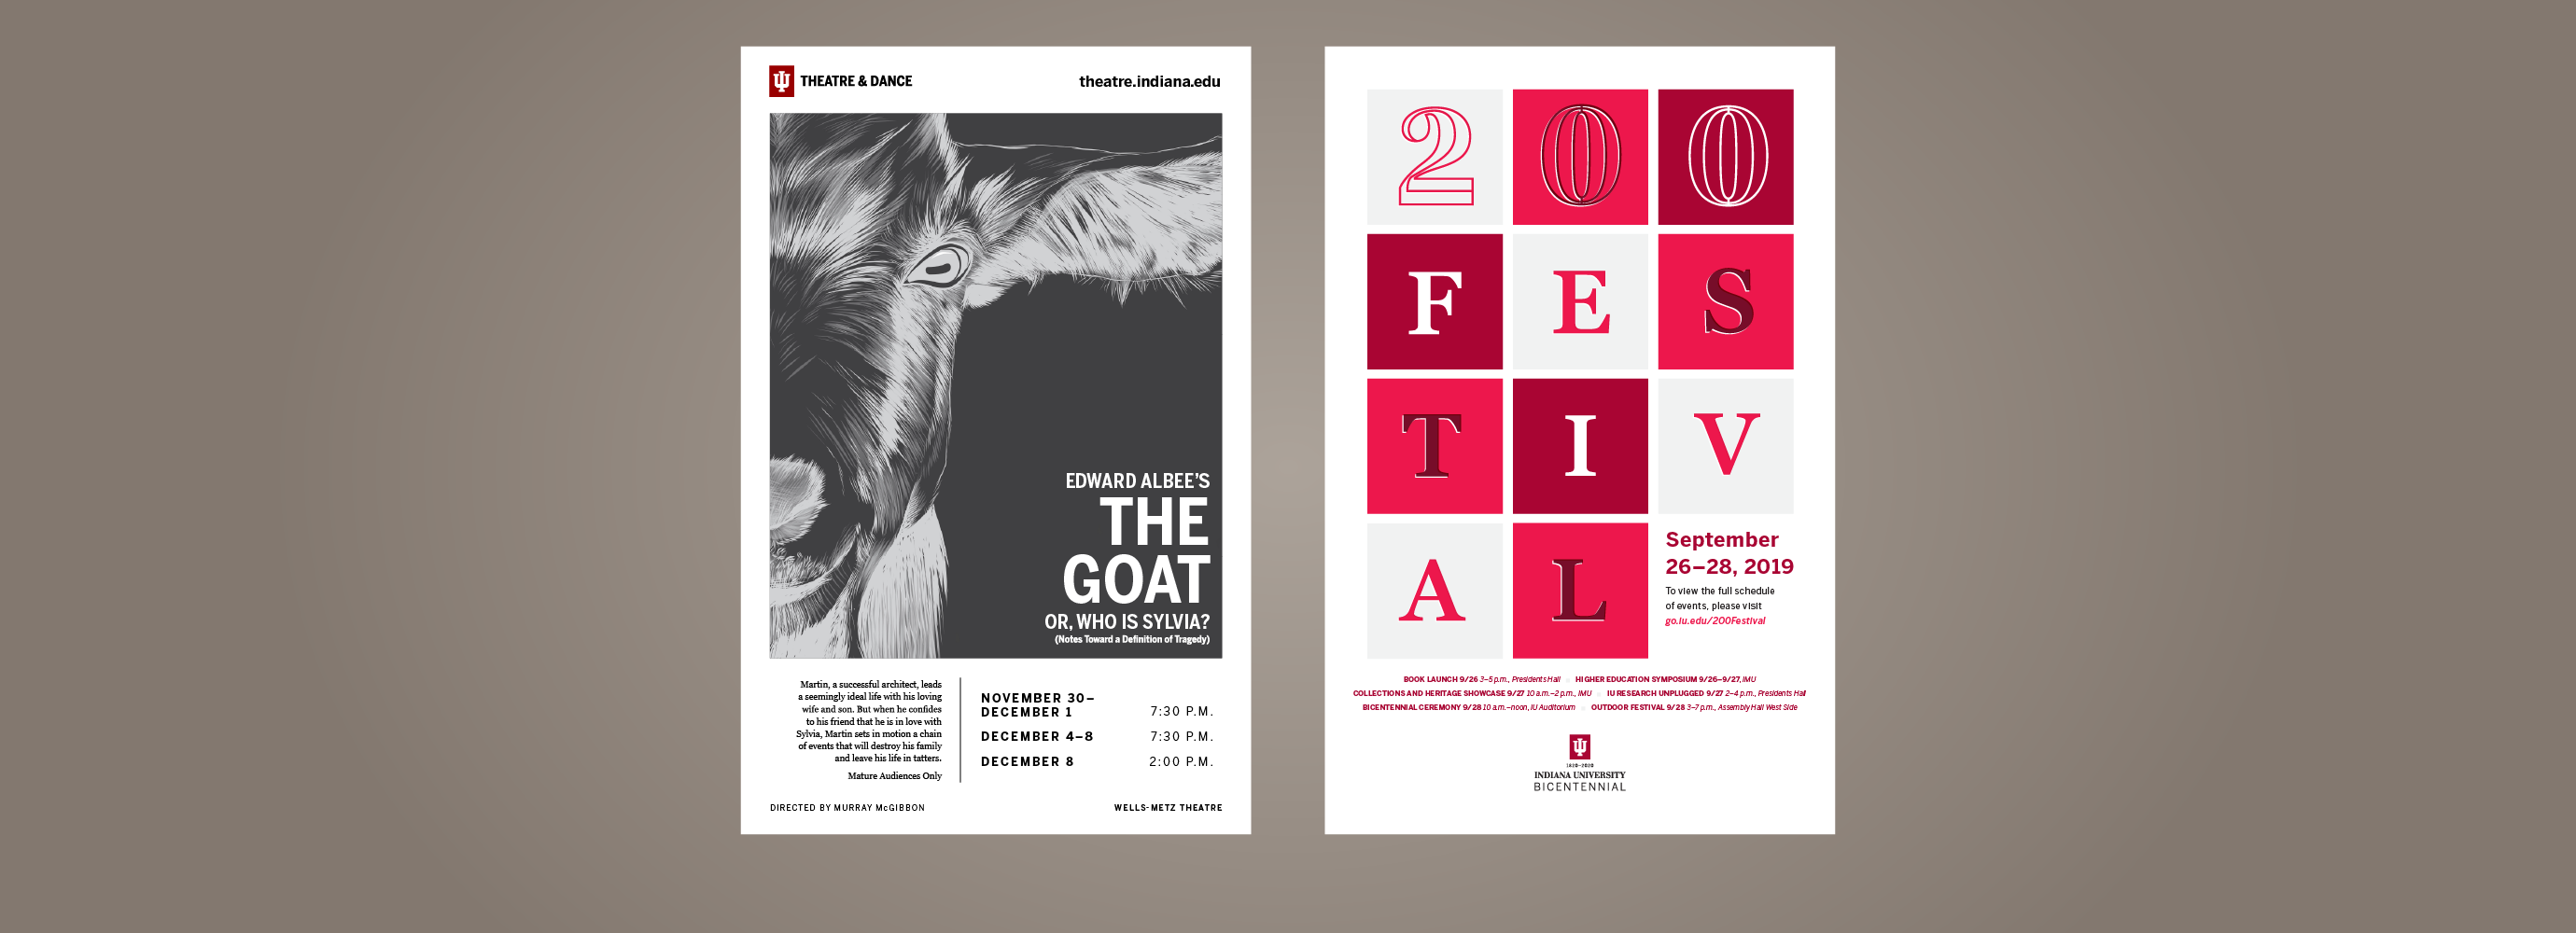 "Two posters, one for the the play ""The Goat"" and one for IU Bicentennial 200 Festival"